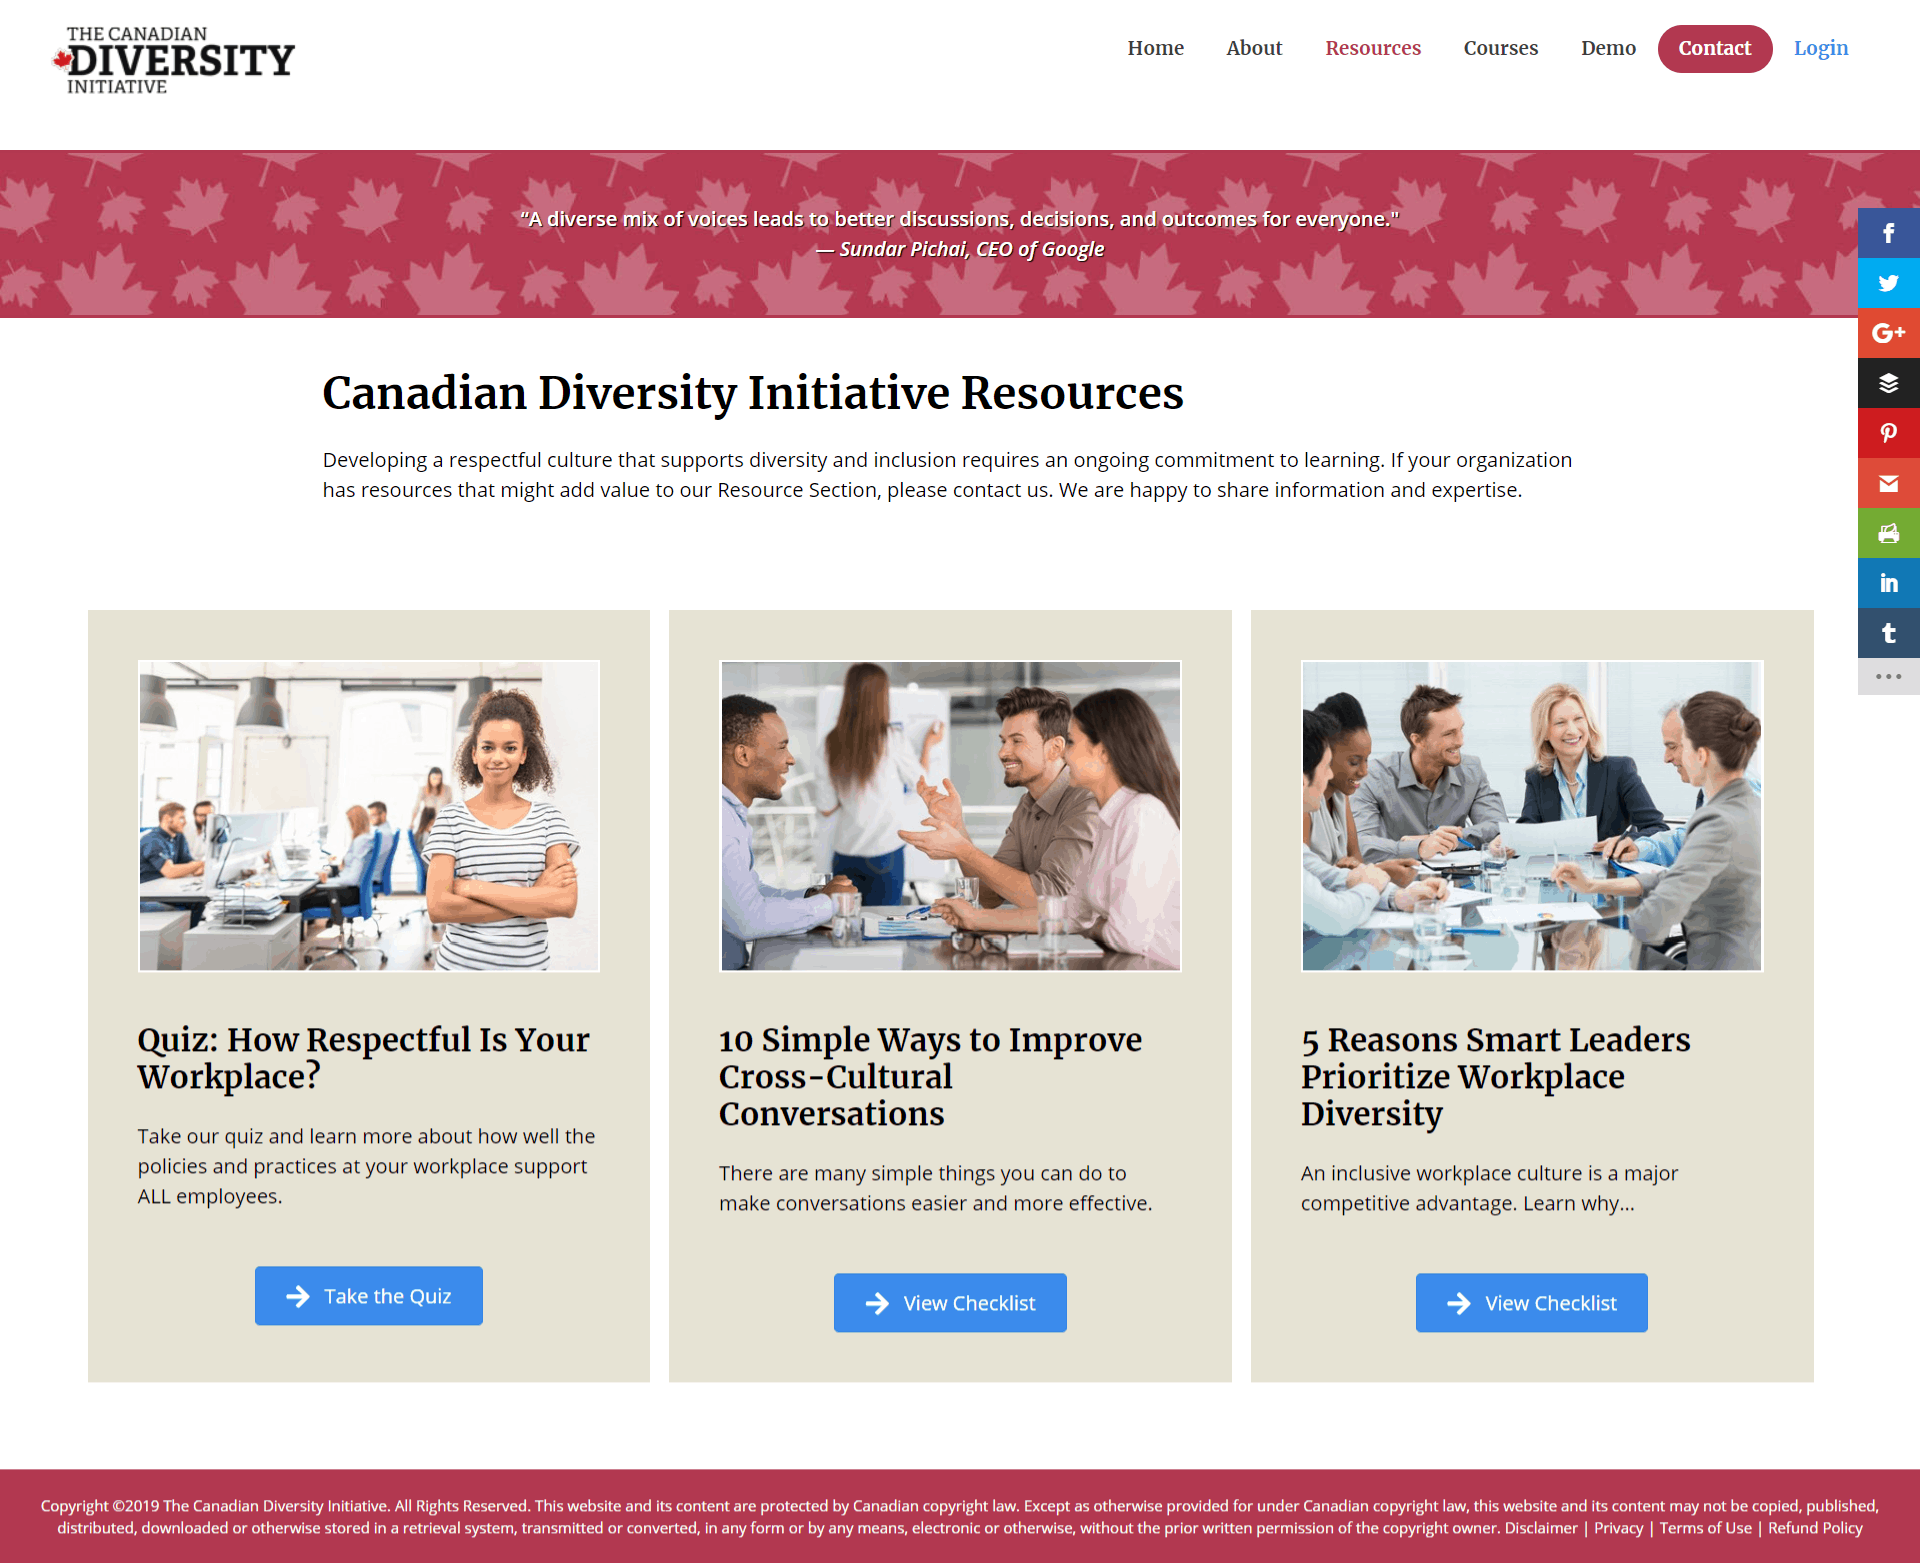 screenshot of new resources page for Canadian Diversity Initiative